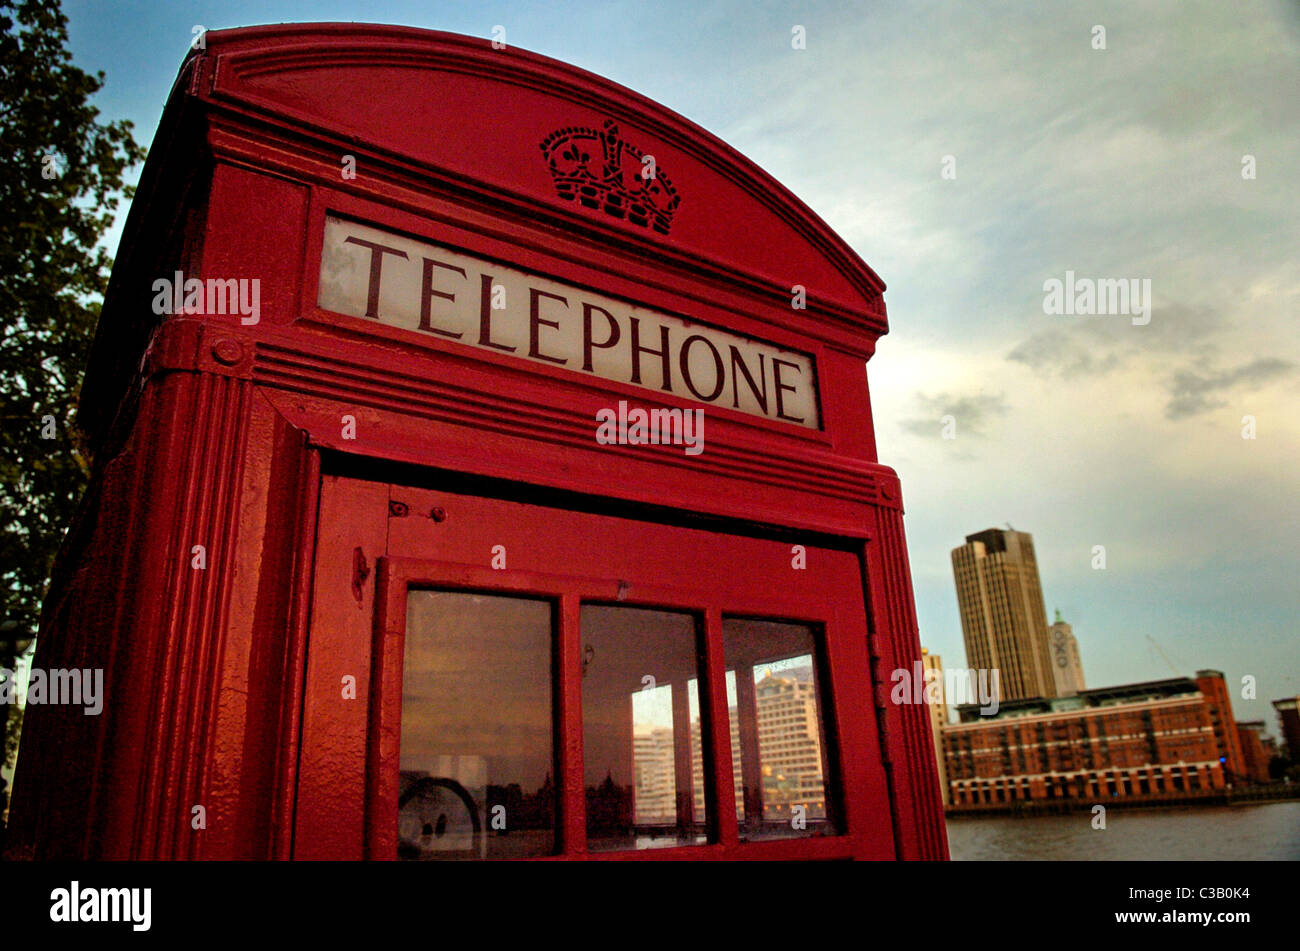 A classic telephone box by the Thames river - Stock Image